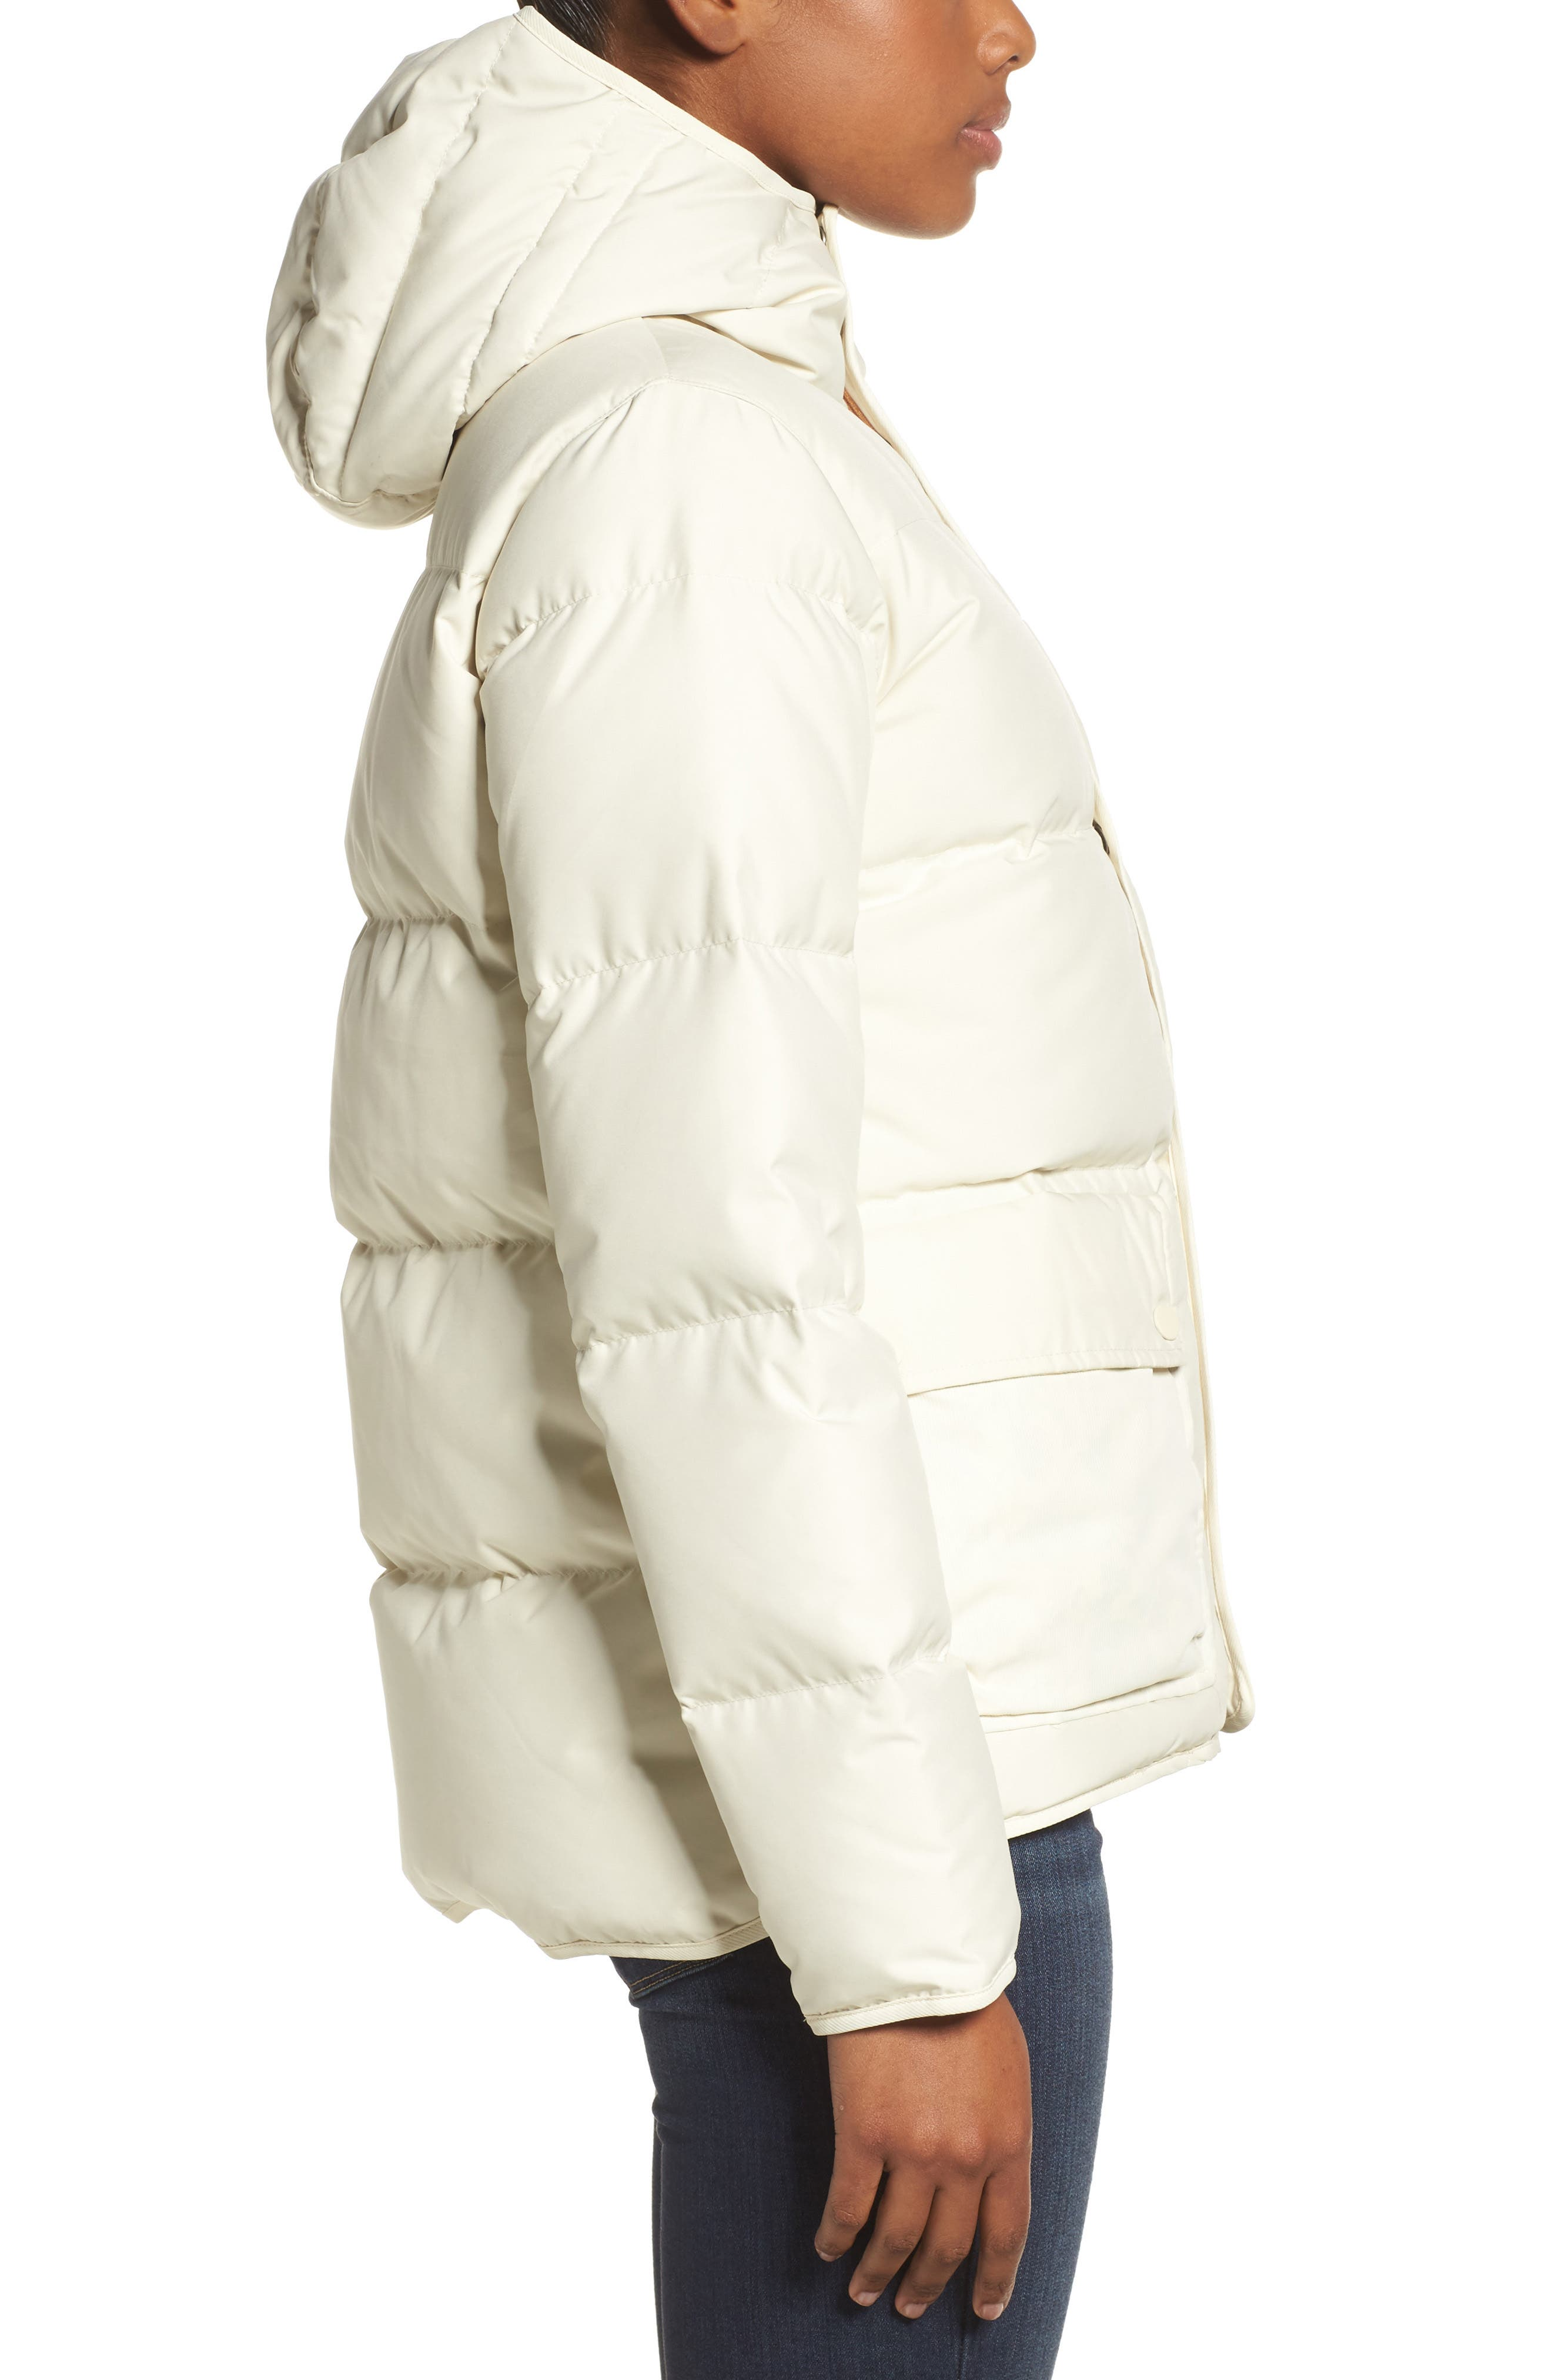 Mage Insulator Hooded Jacket,                             Alternate thumbnail 3, color,                             250